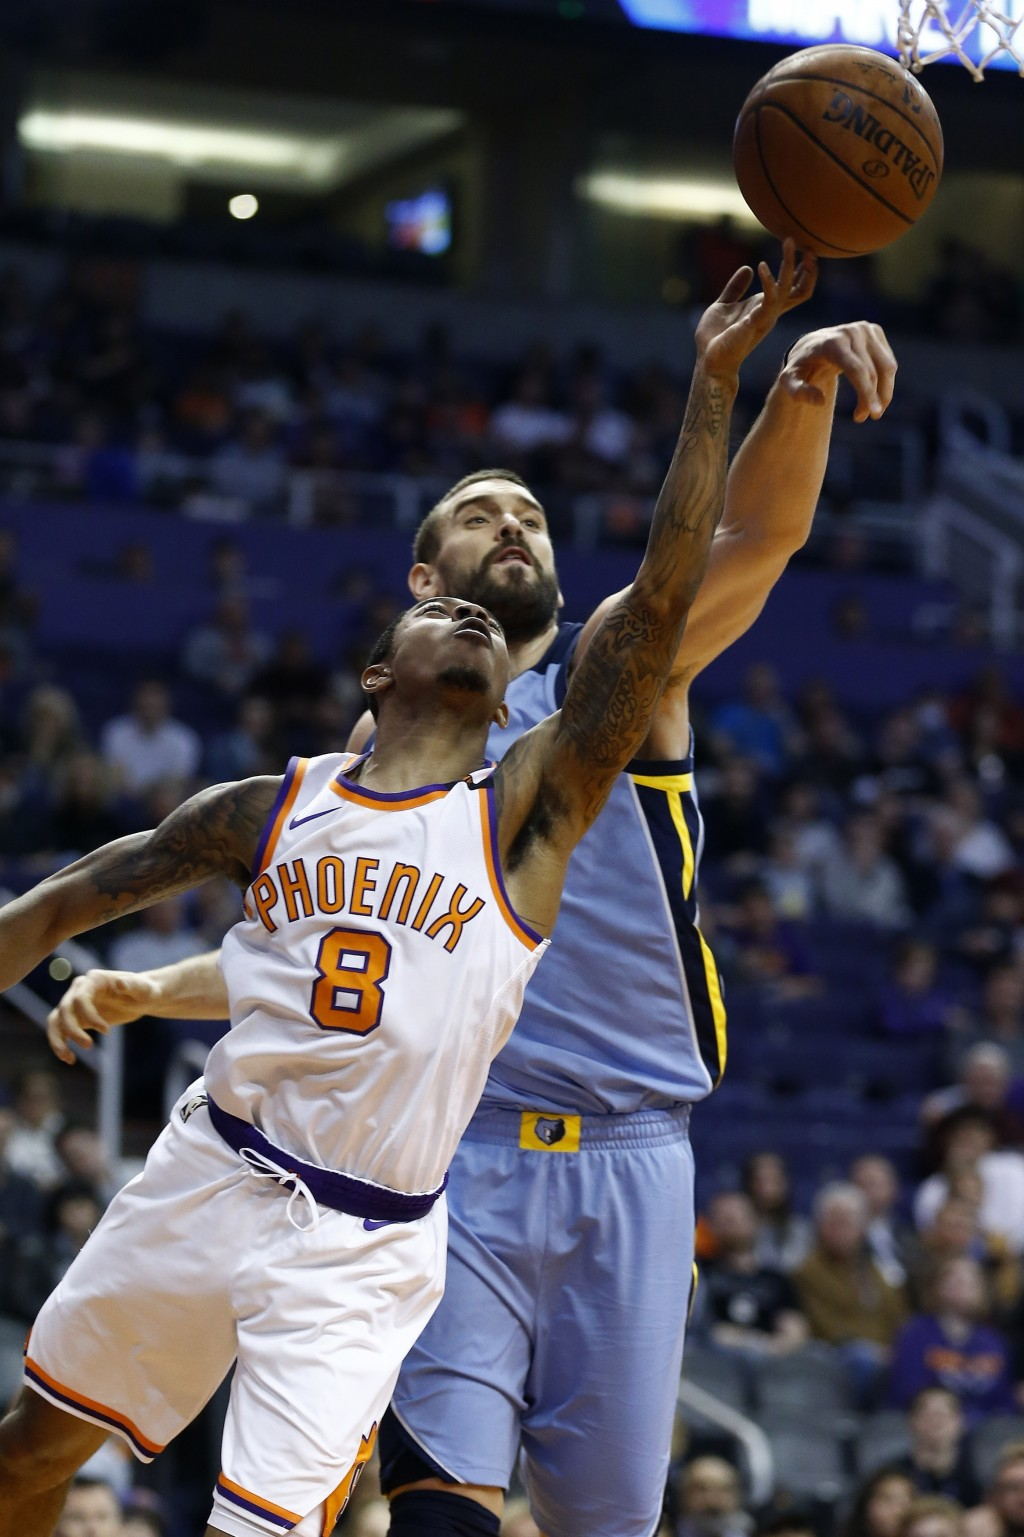 Phoenix Suns guard Tyler Ulis (8) gets his shot blocked by Memphis Grizzlies center Marc Gasol (33) during the first half of an NBA basketball game, T...